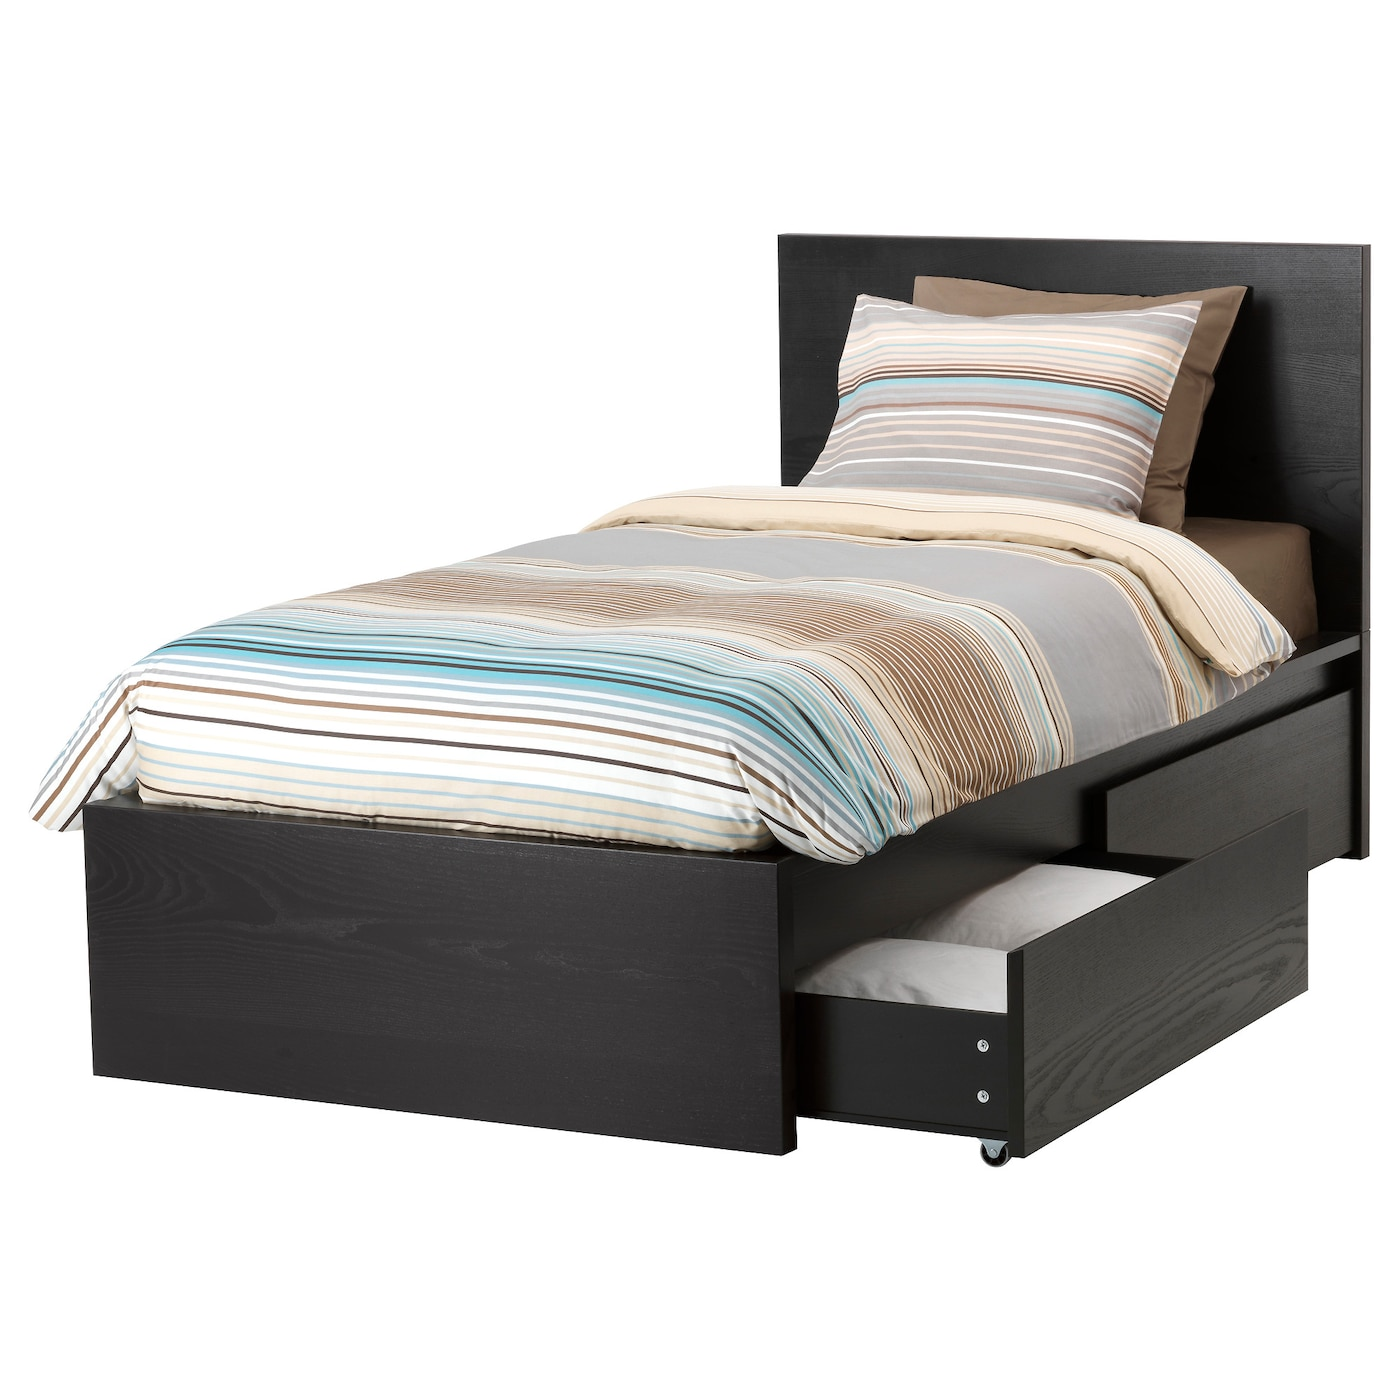 Malm bed frame high w 2 storage boxes black brown - Ikea malm letto ...